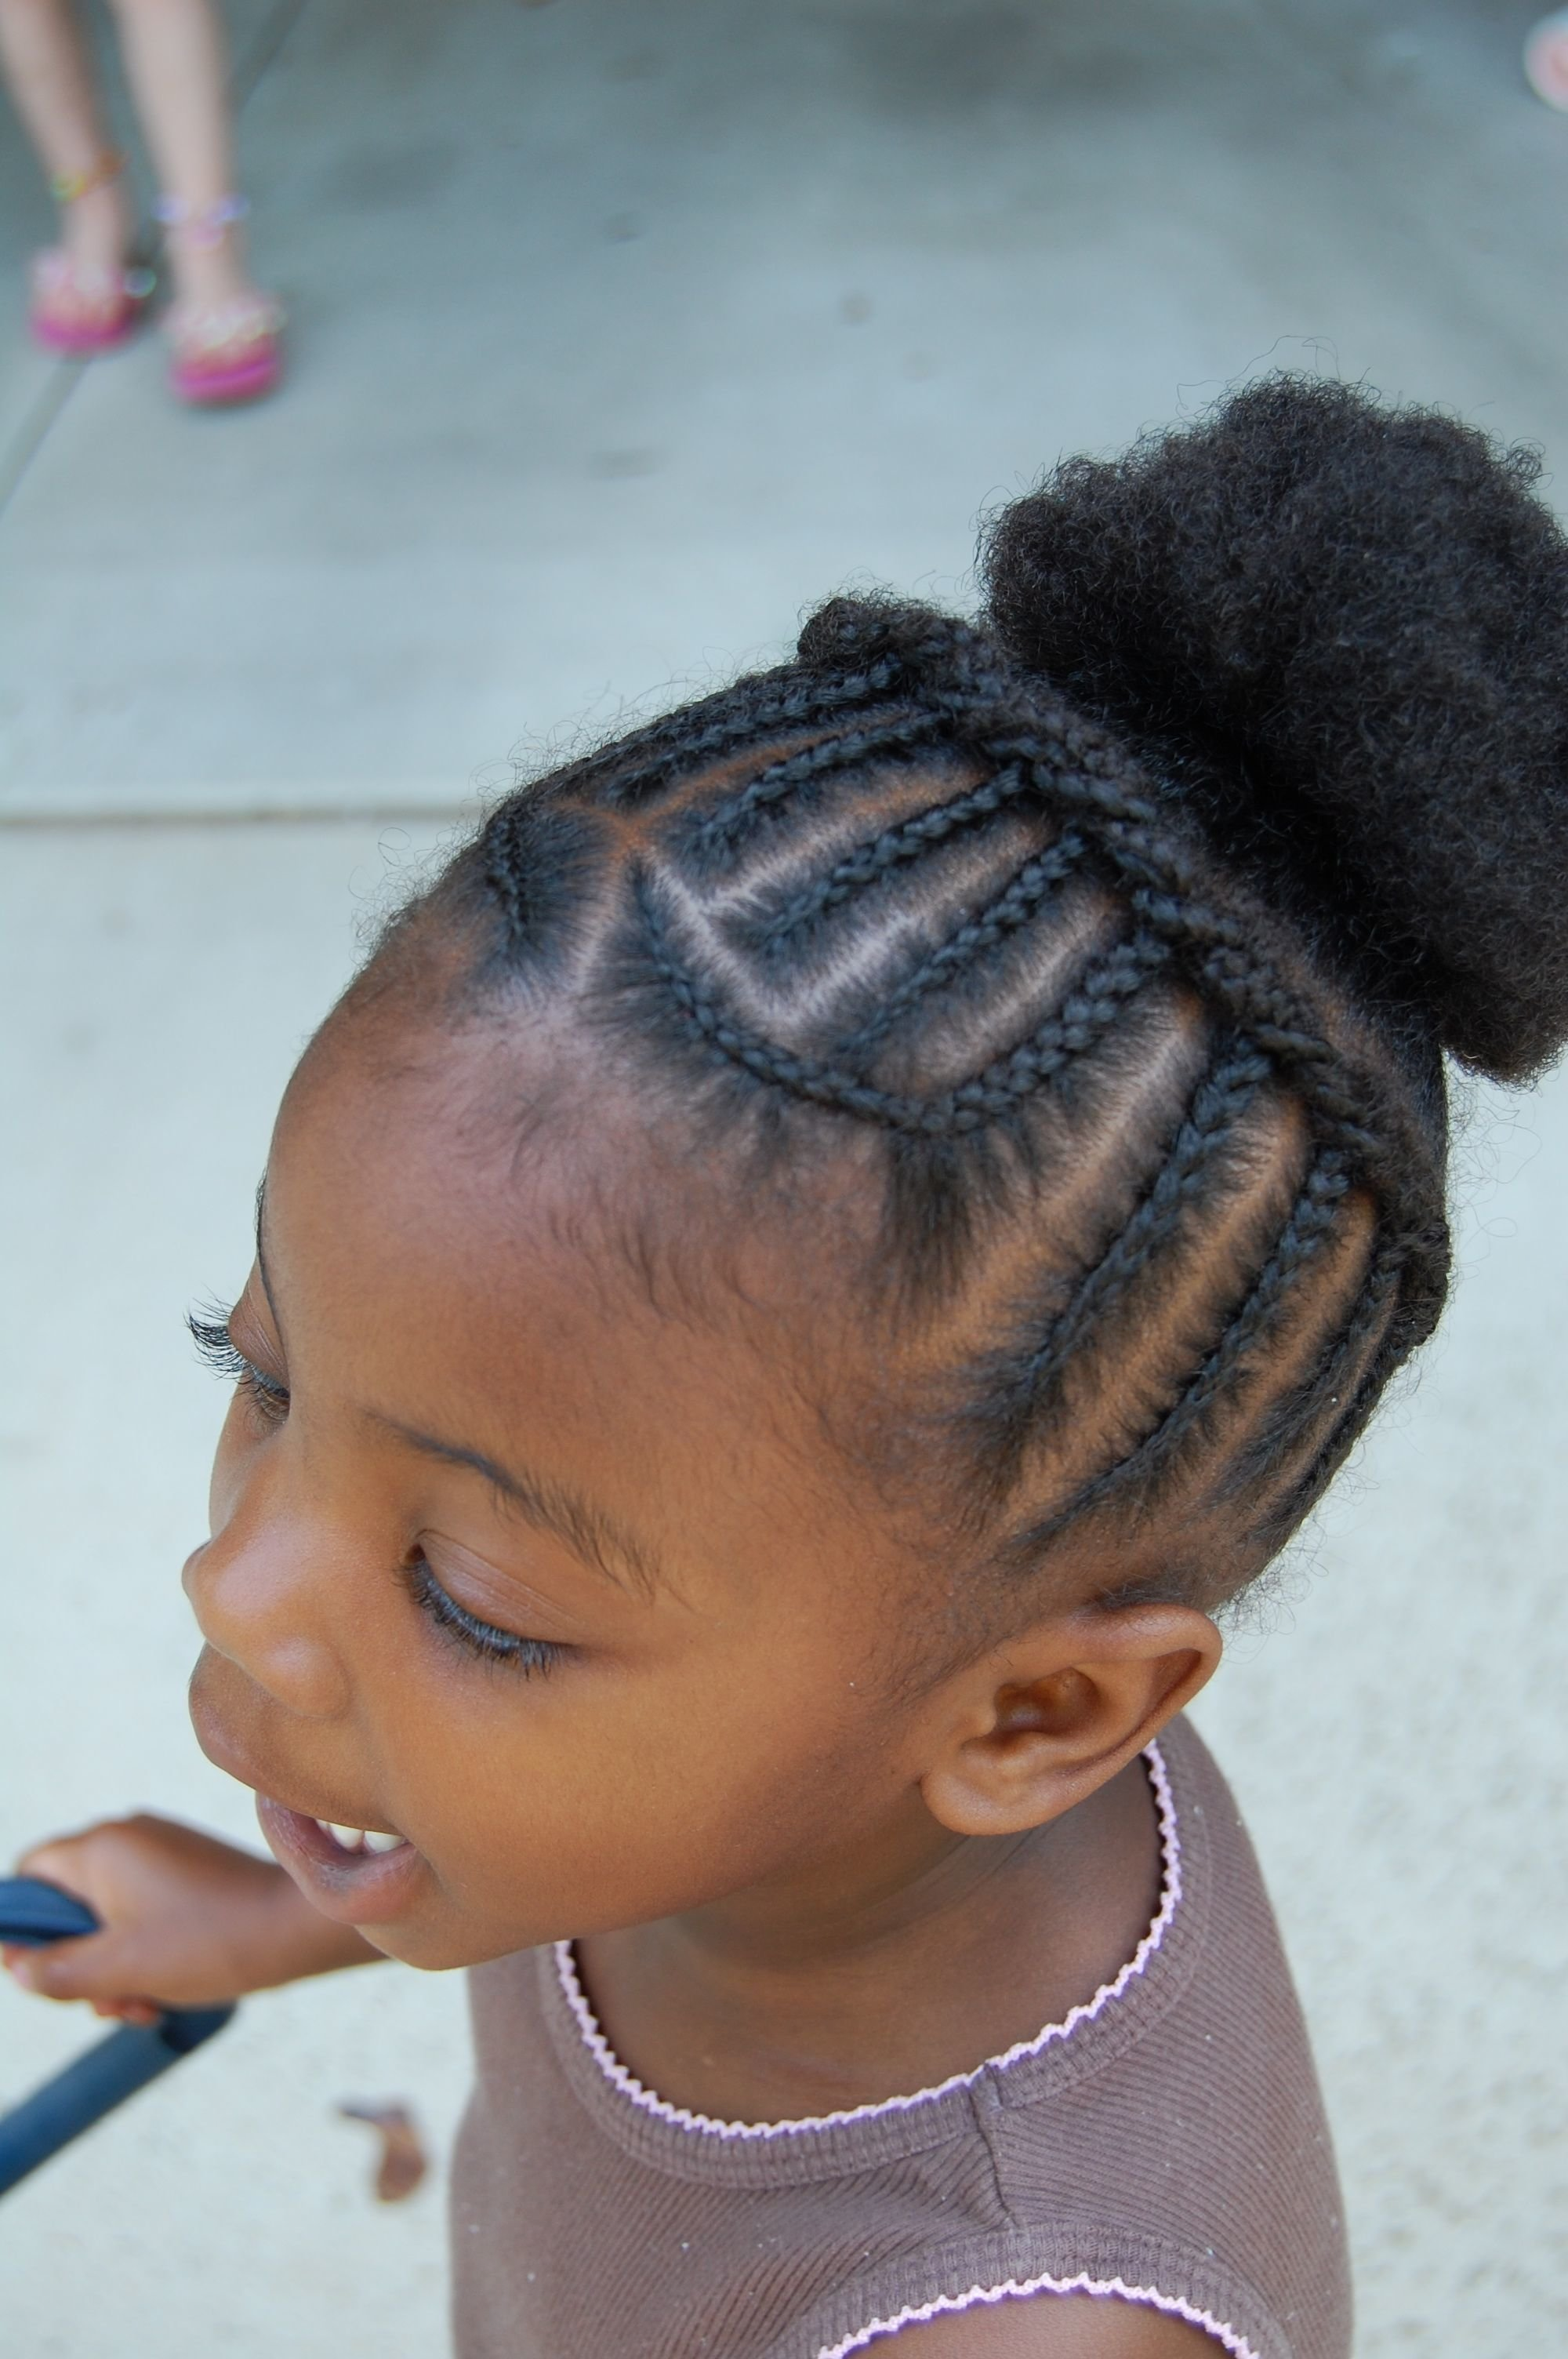 Free African Princess Little Black Girl Natural Hair Styles Wallpaper